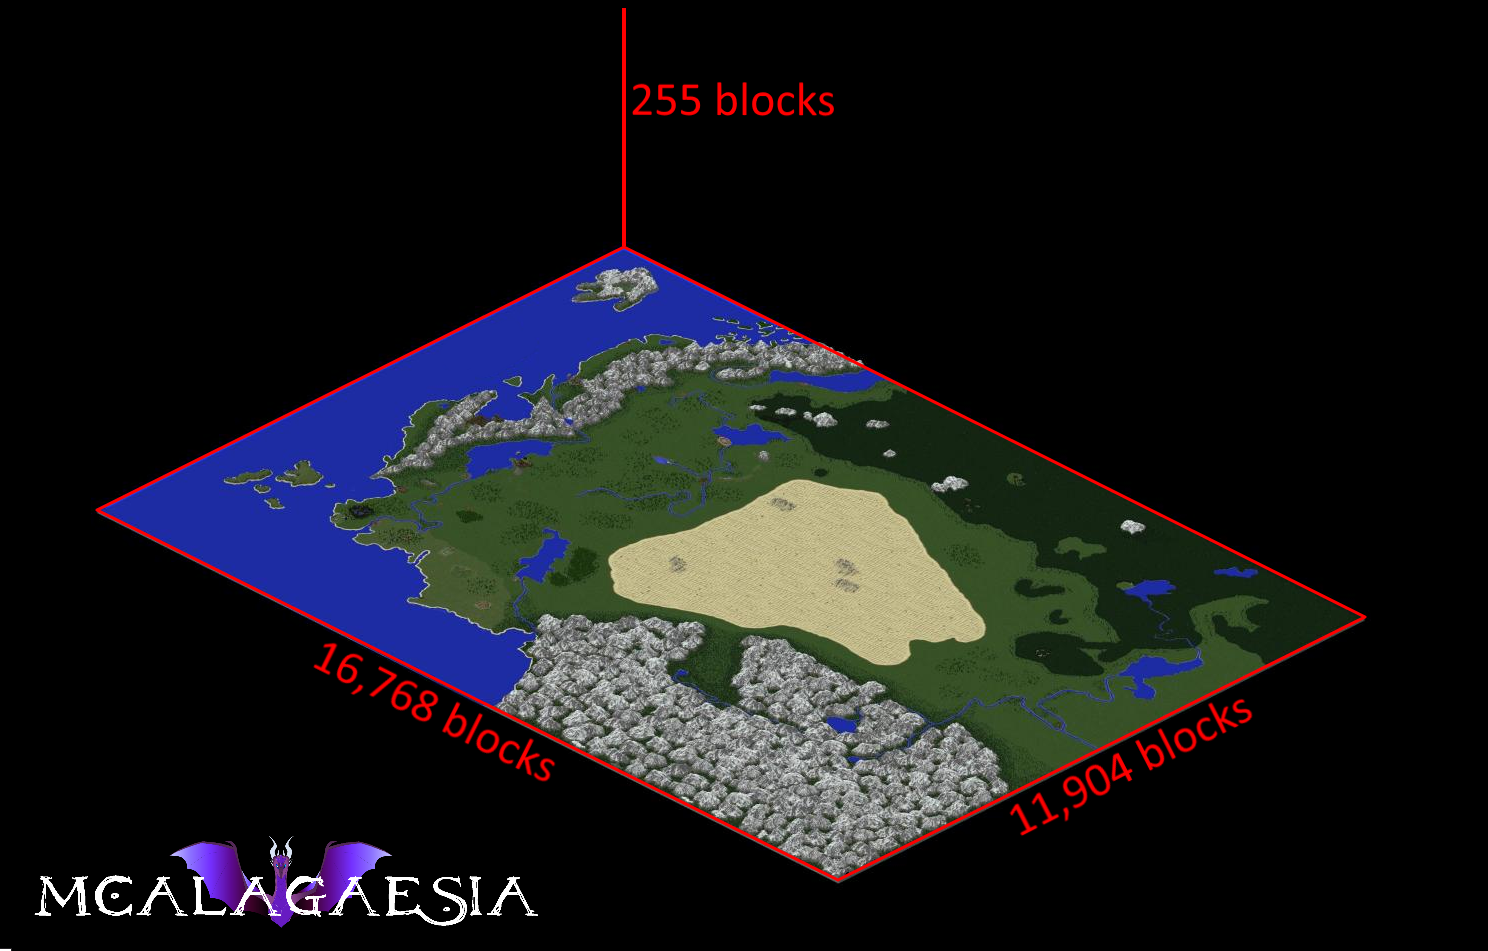 Map of MCAlagaesia with dimensions marked